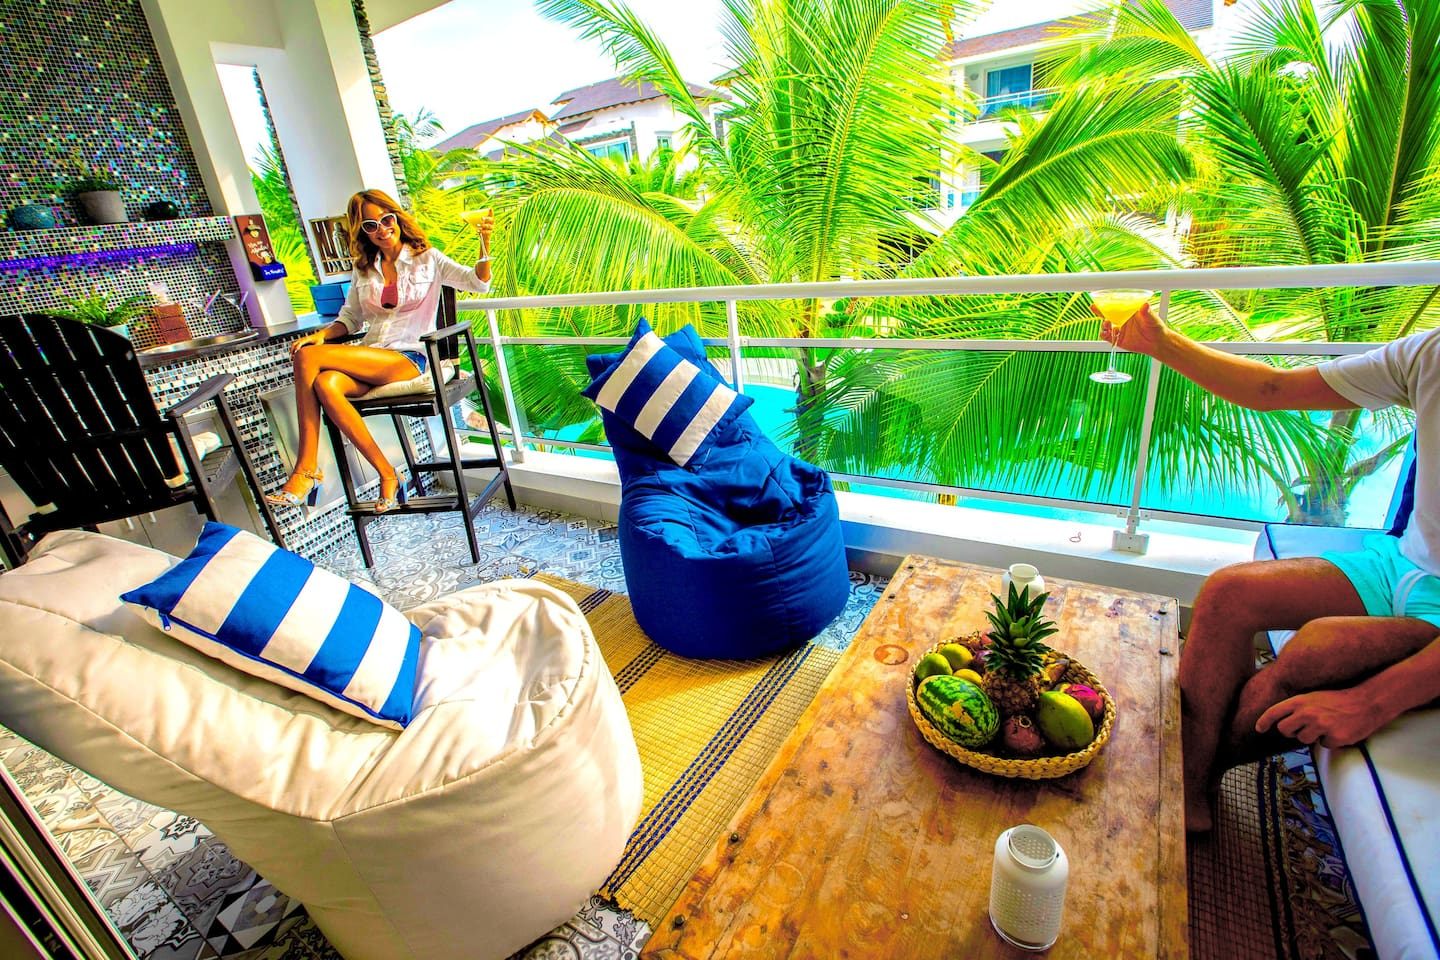 SUITE54 - Amazing Terrace with bar, electric BBQ and all Cocktail accessories you need to enjoy a perfect day in paradise with your family and friends while having a tropical cocktail. Could life be better?